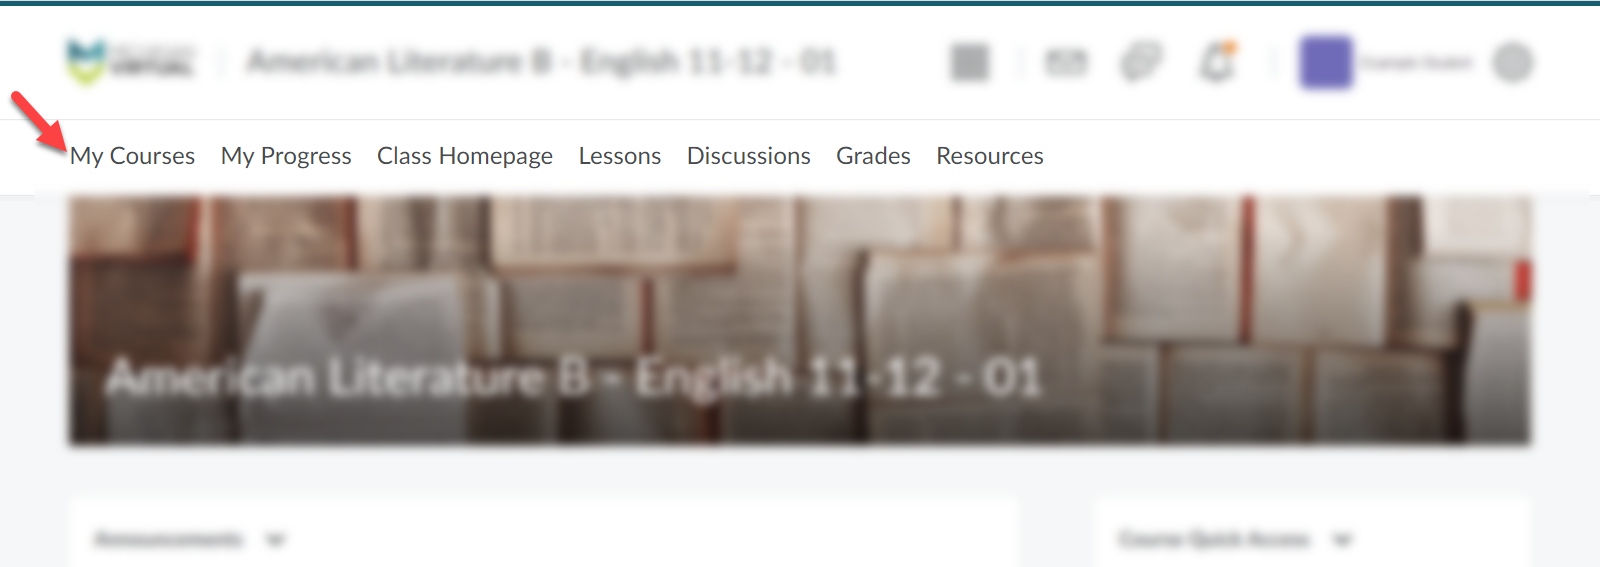 The course page is displayed blurring out all sections minus the navbar. An arrow points to the My Courses option within the Navbar.